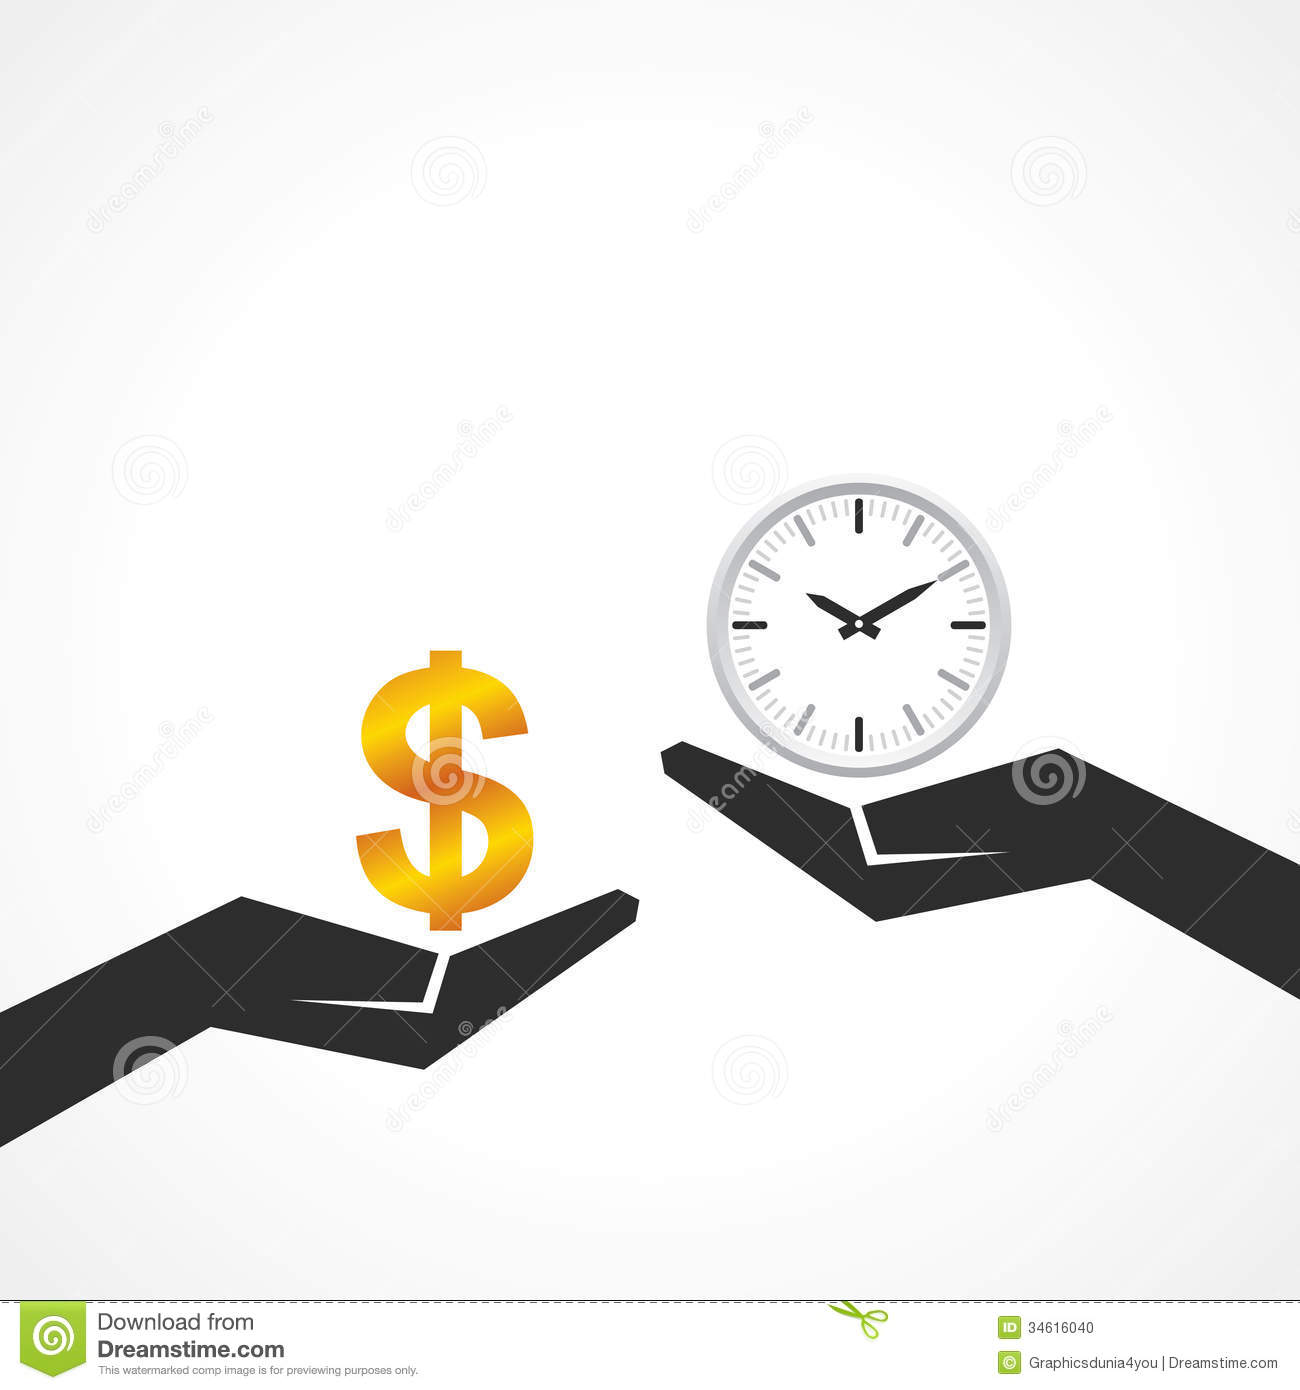 Hand Hold Dollar And Clock Symbol To Compare Their Value Stock Photo ...